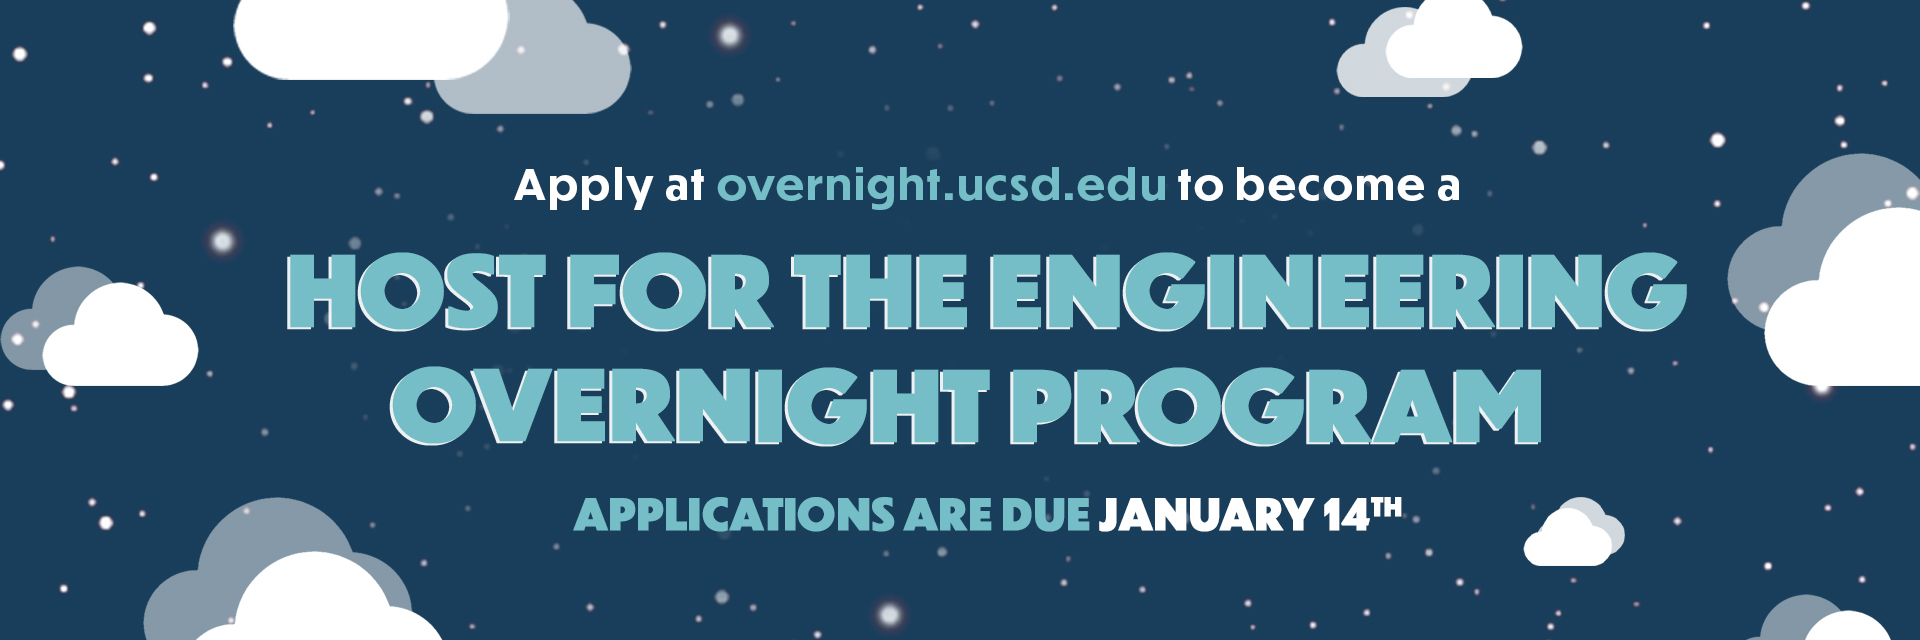 Engineering Overnight Program